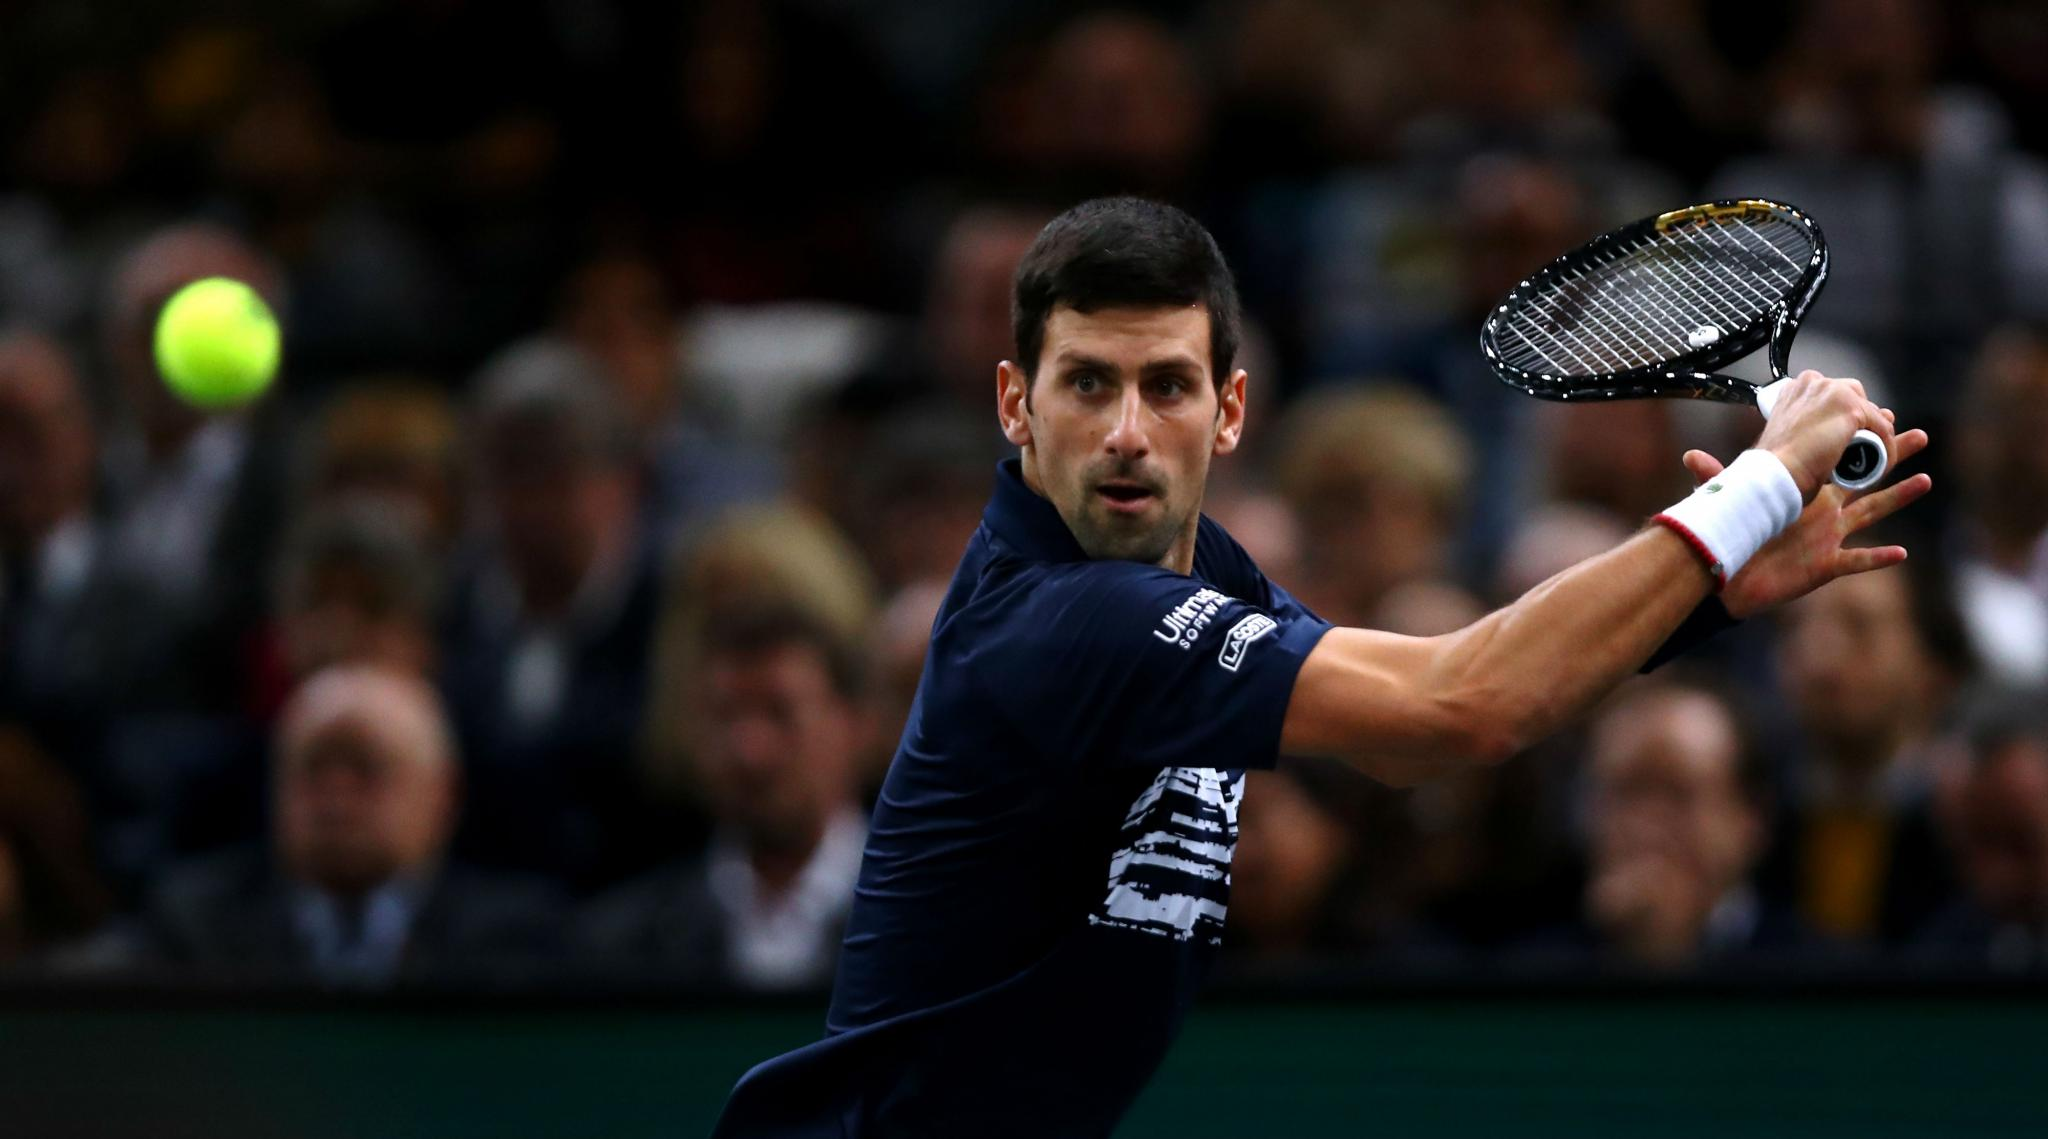 Novak Djokovic Greets Fans After Spectacular Victory Against Matteo Berrettini in Nitto ATP Finals 2019 Tennis Tournament (Watch Video)